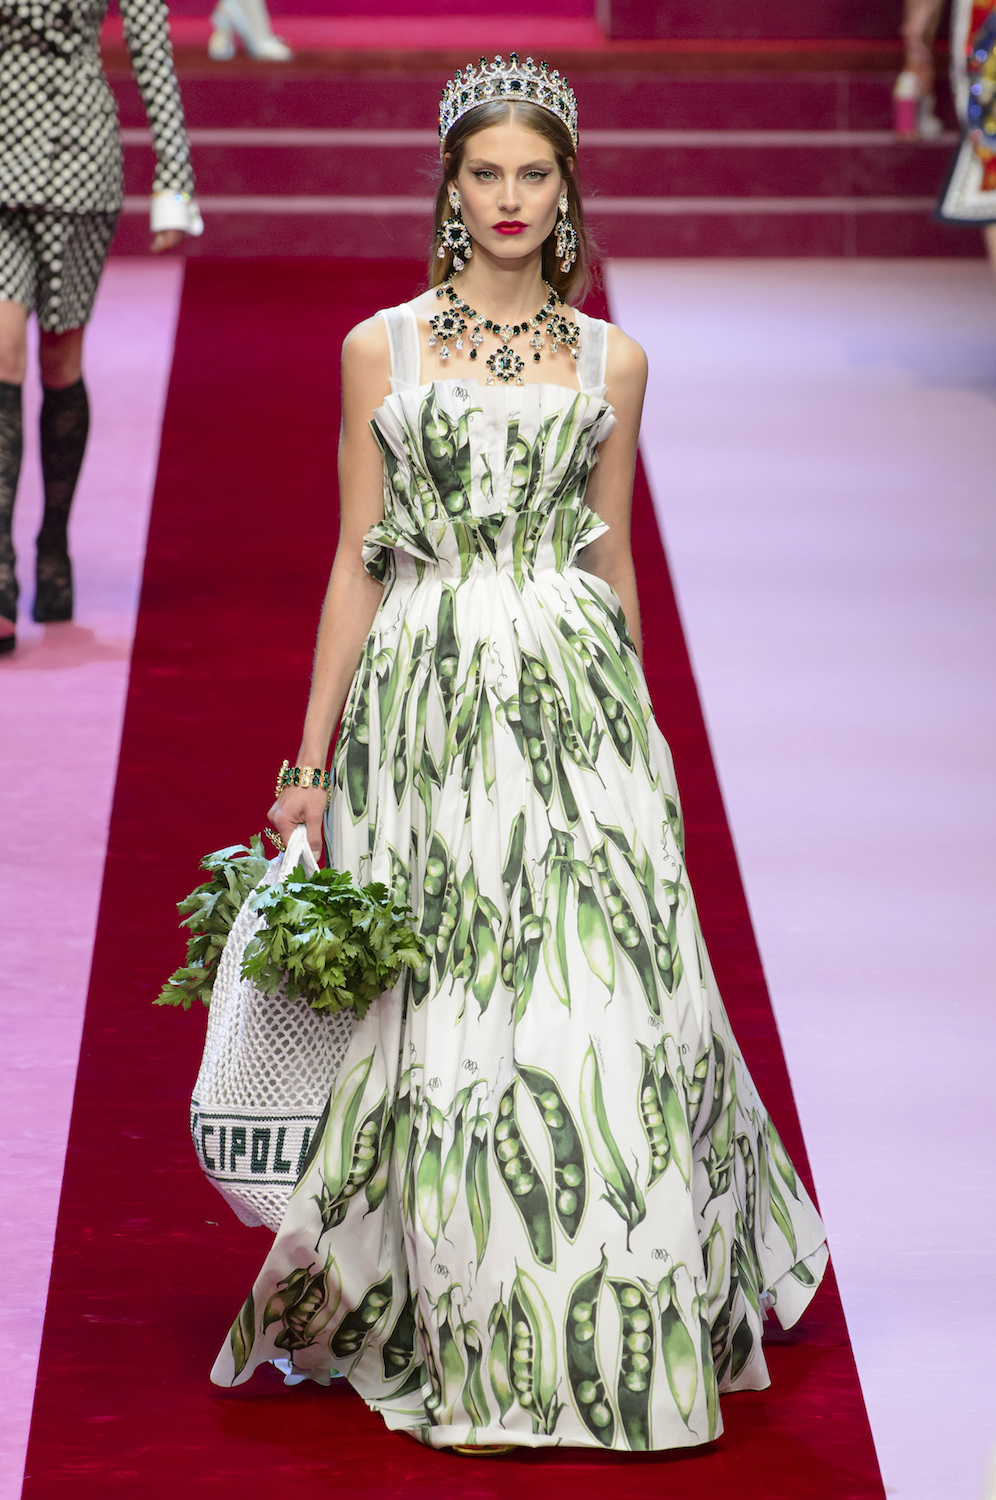 Dolce & Gabbana Gambles on Love for Spring/Summer 2018